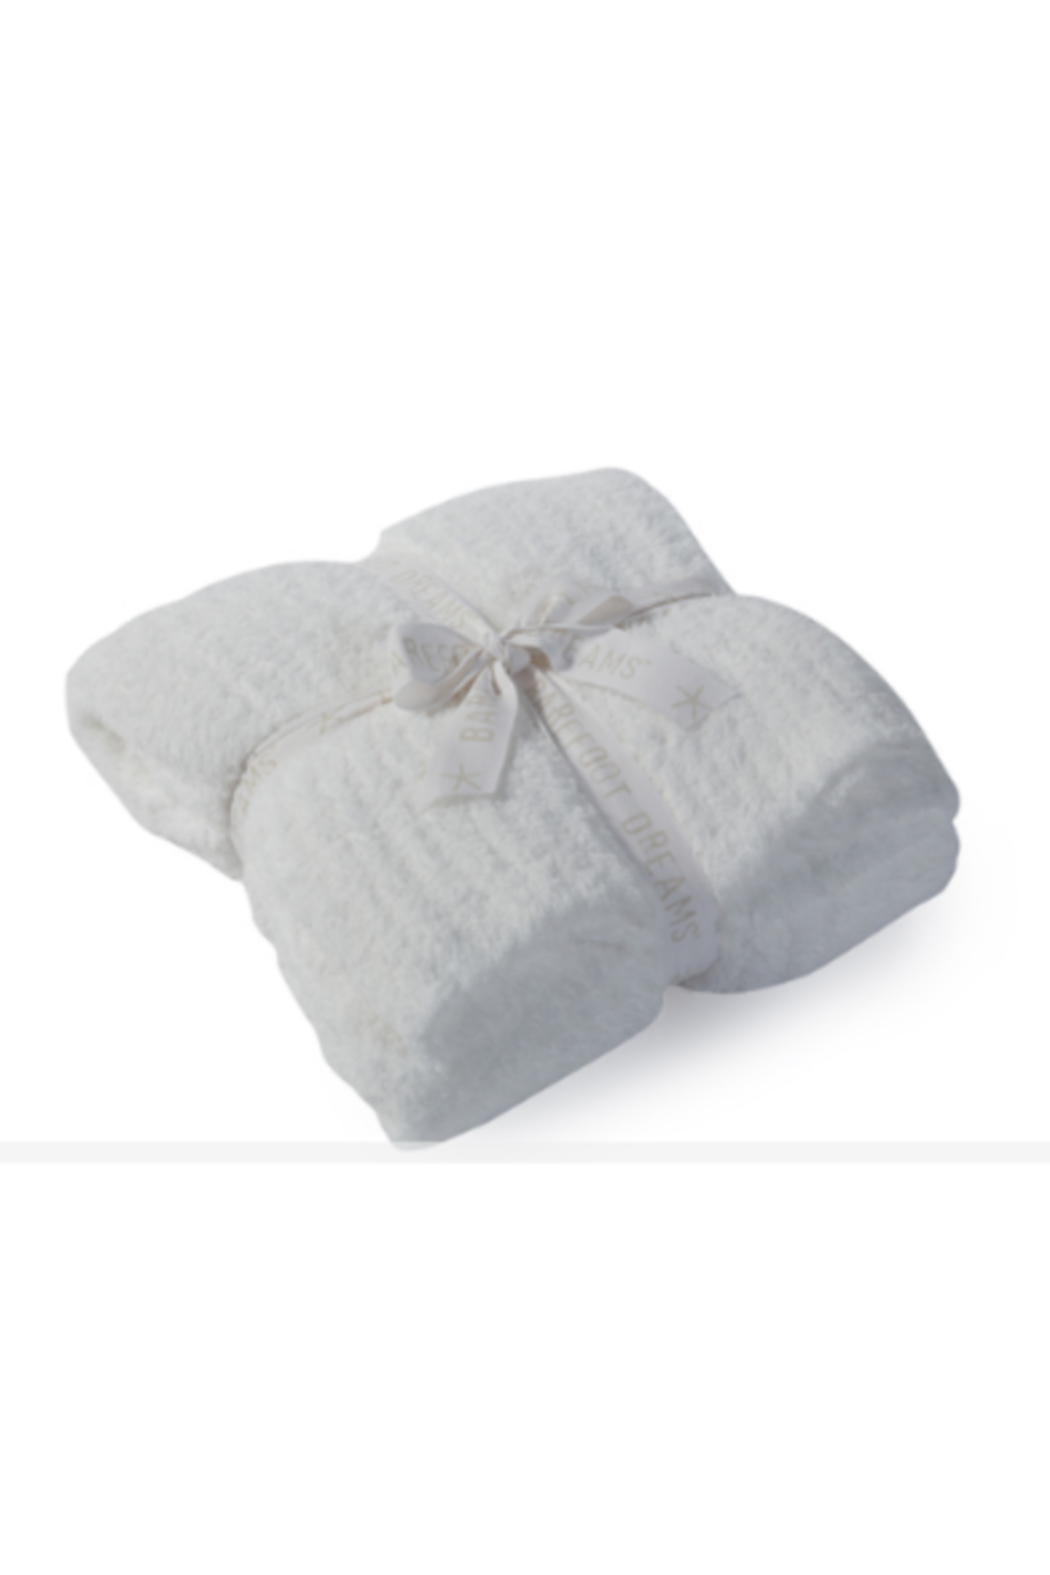 The Birds Nest COZYCHIC RIBBED THROW-WHITE - Main Image